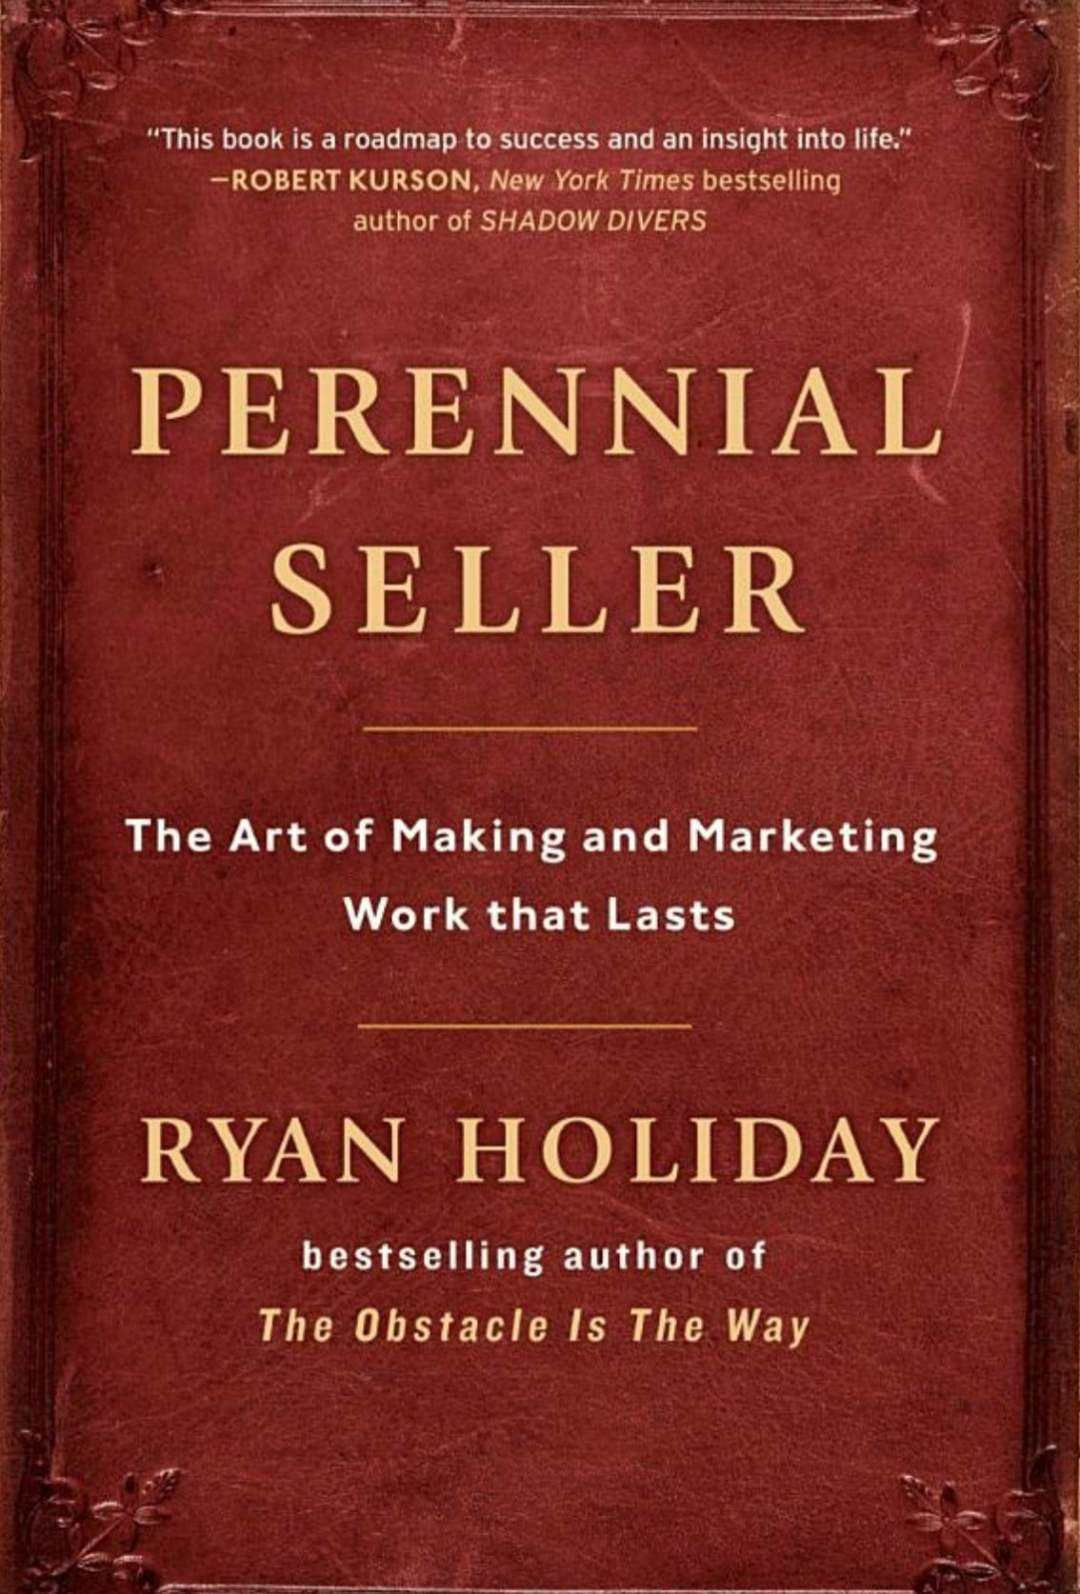 Review: Perennial Seller—The Art of Making and Marketing Work That Lasts